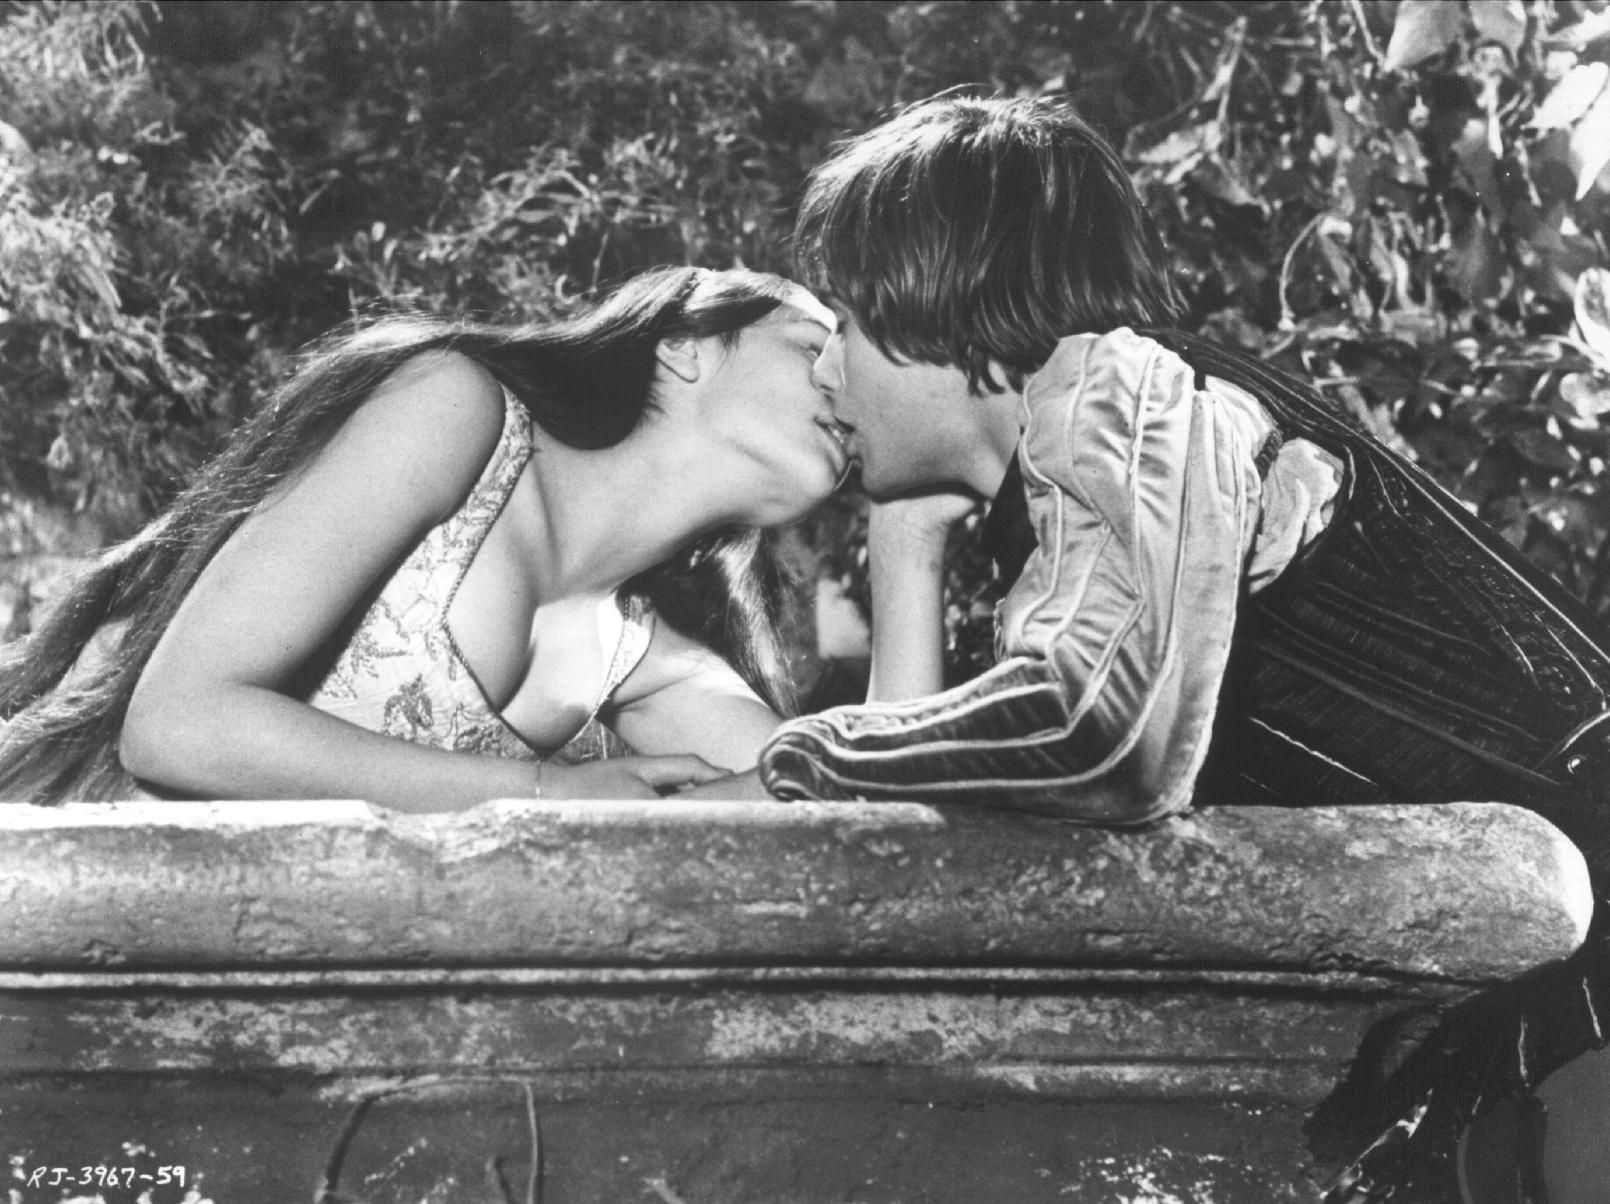 film versions of romeo and juliet essay The many versions of romeo and juliet,  unit 2 adaptations and transformations 39  baz luhrmann's 1996 film romeo + juliet is a spectacularly modern adaptation.